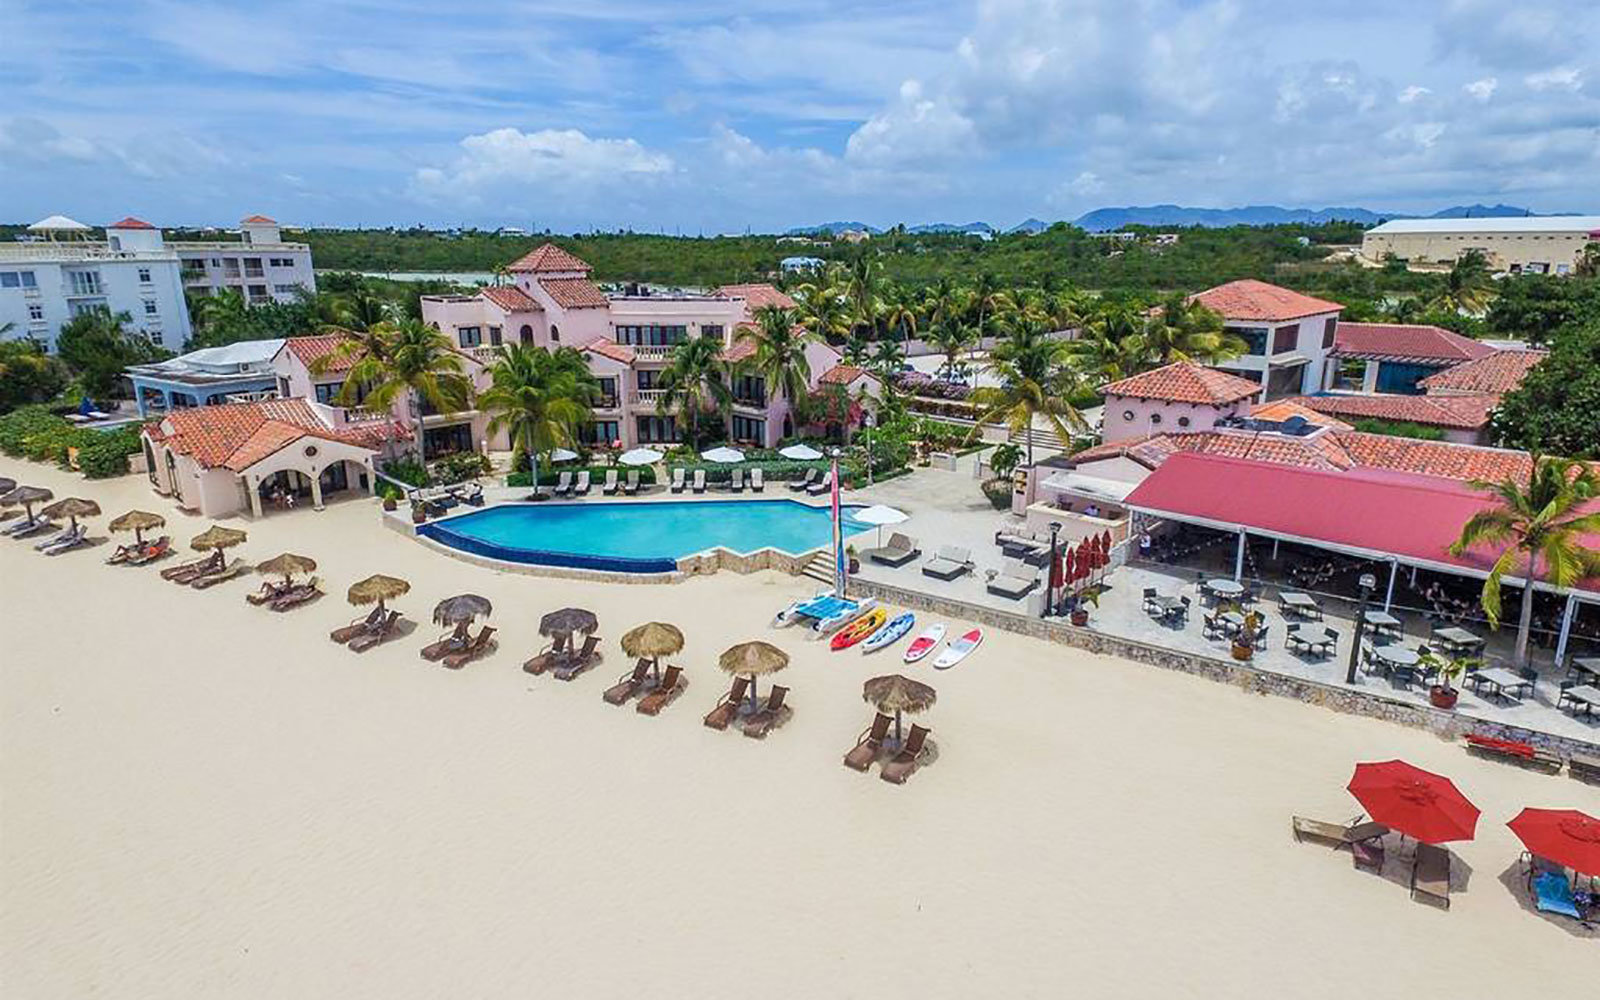 Top Romantic Hotels: Frangipani Beach Resort, Anguilla